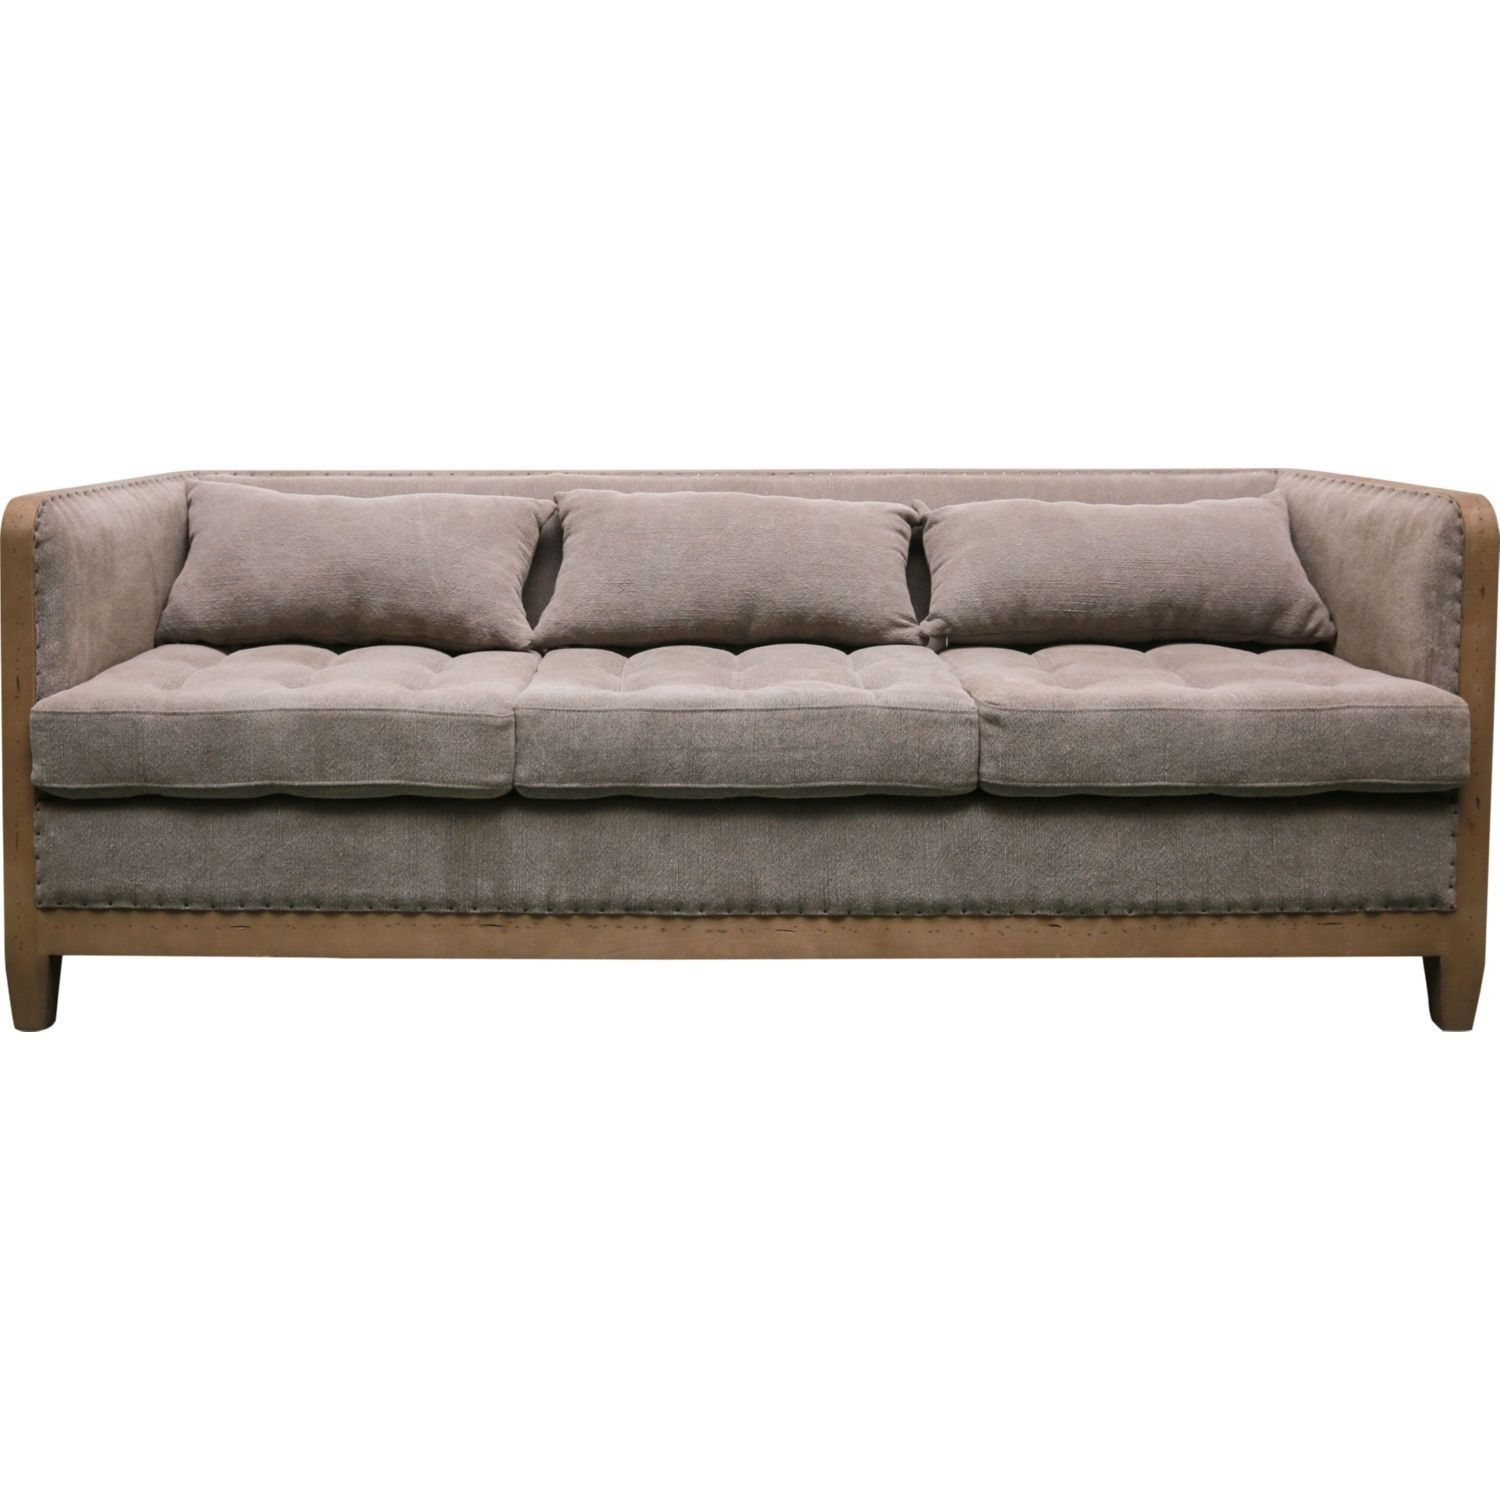 Moe's Home Collection Sx 1015 25 Cosette Sofa In Grey | Pinterest Intended For Cosette Leather Sofa Chairs (View 5 of 20)